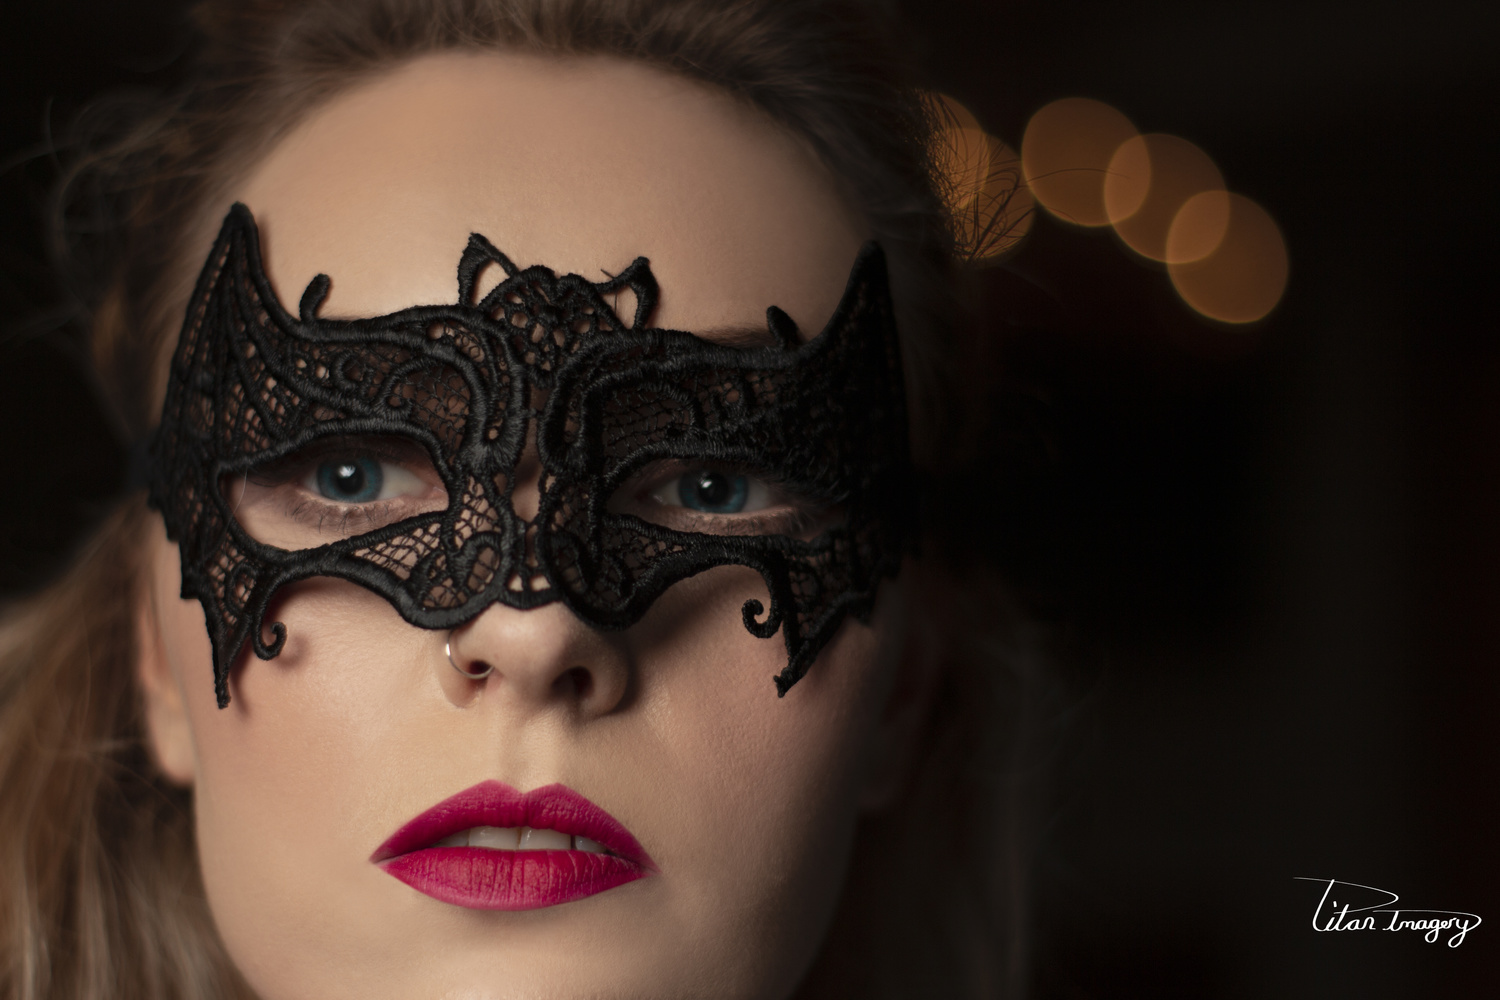 Behind the mask by David Albutt